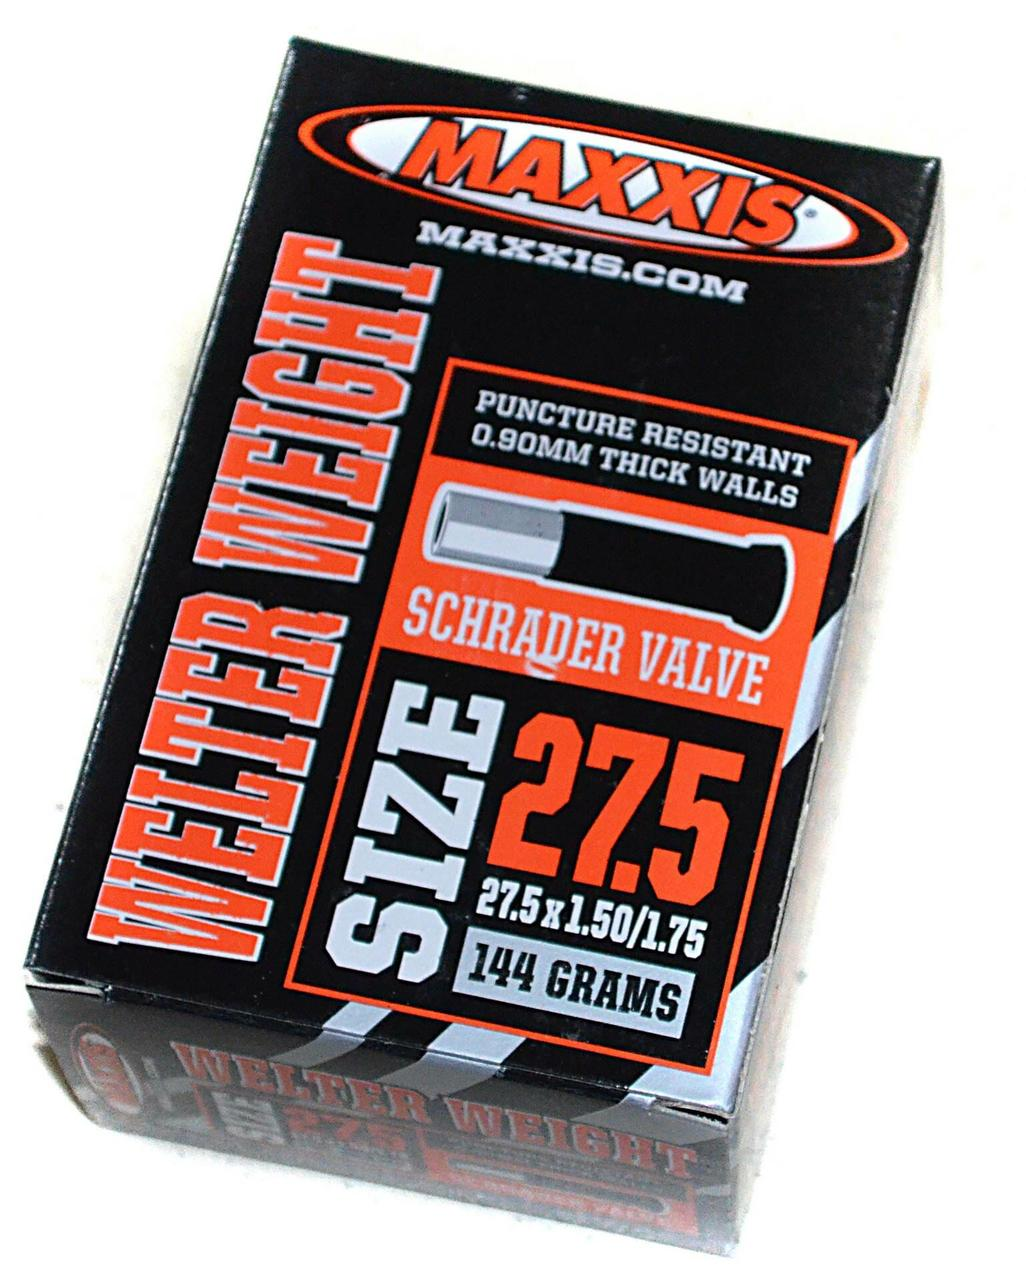 Камера Maxxis Welter Weight (IB75081400) 27.5x1.50/1.75 FV L:48мм